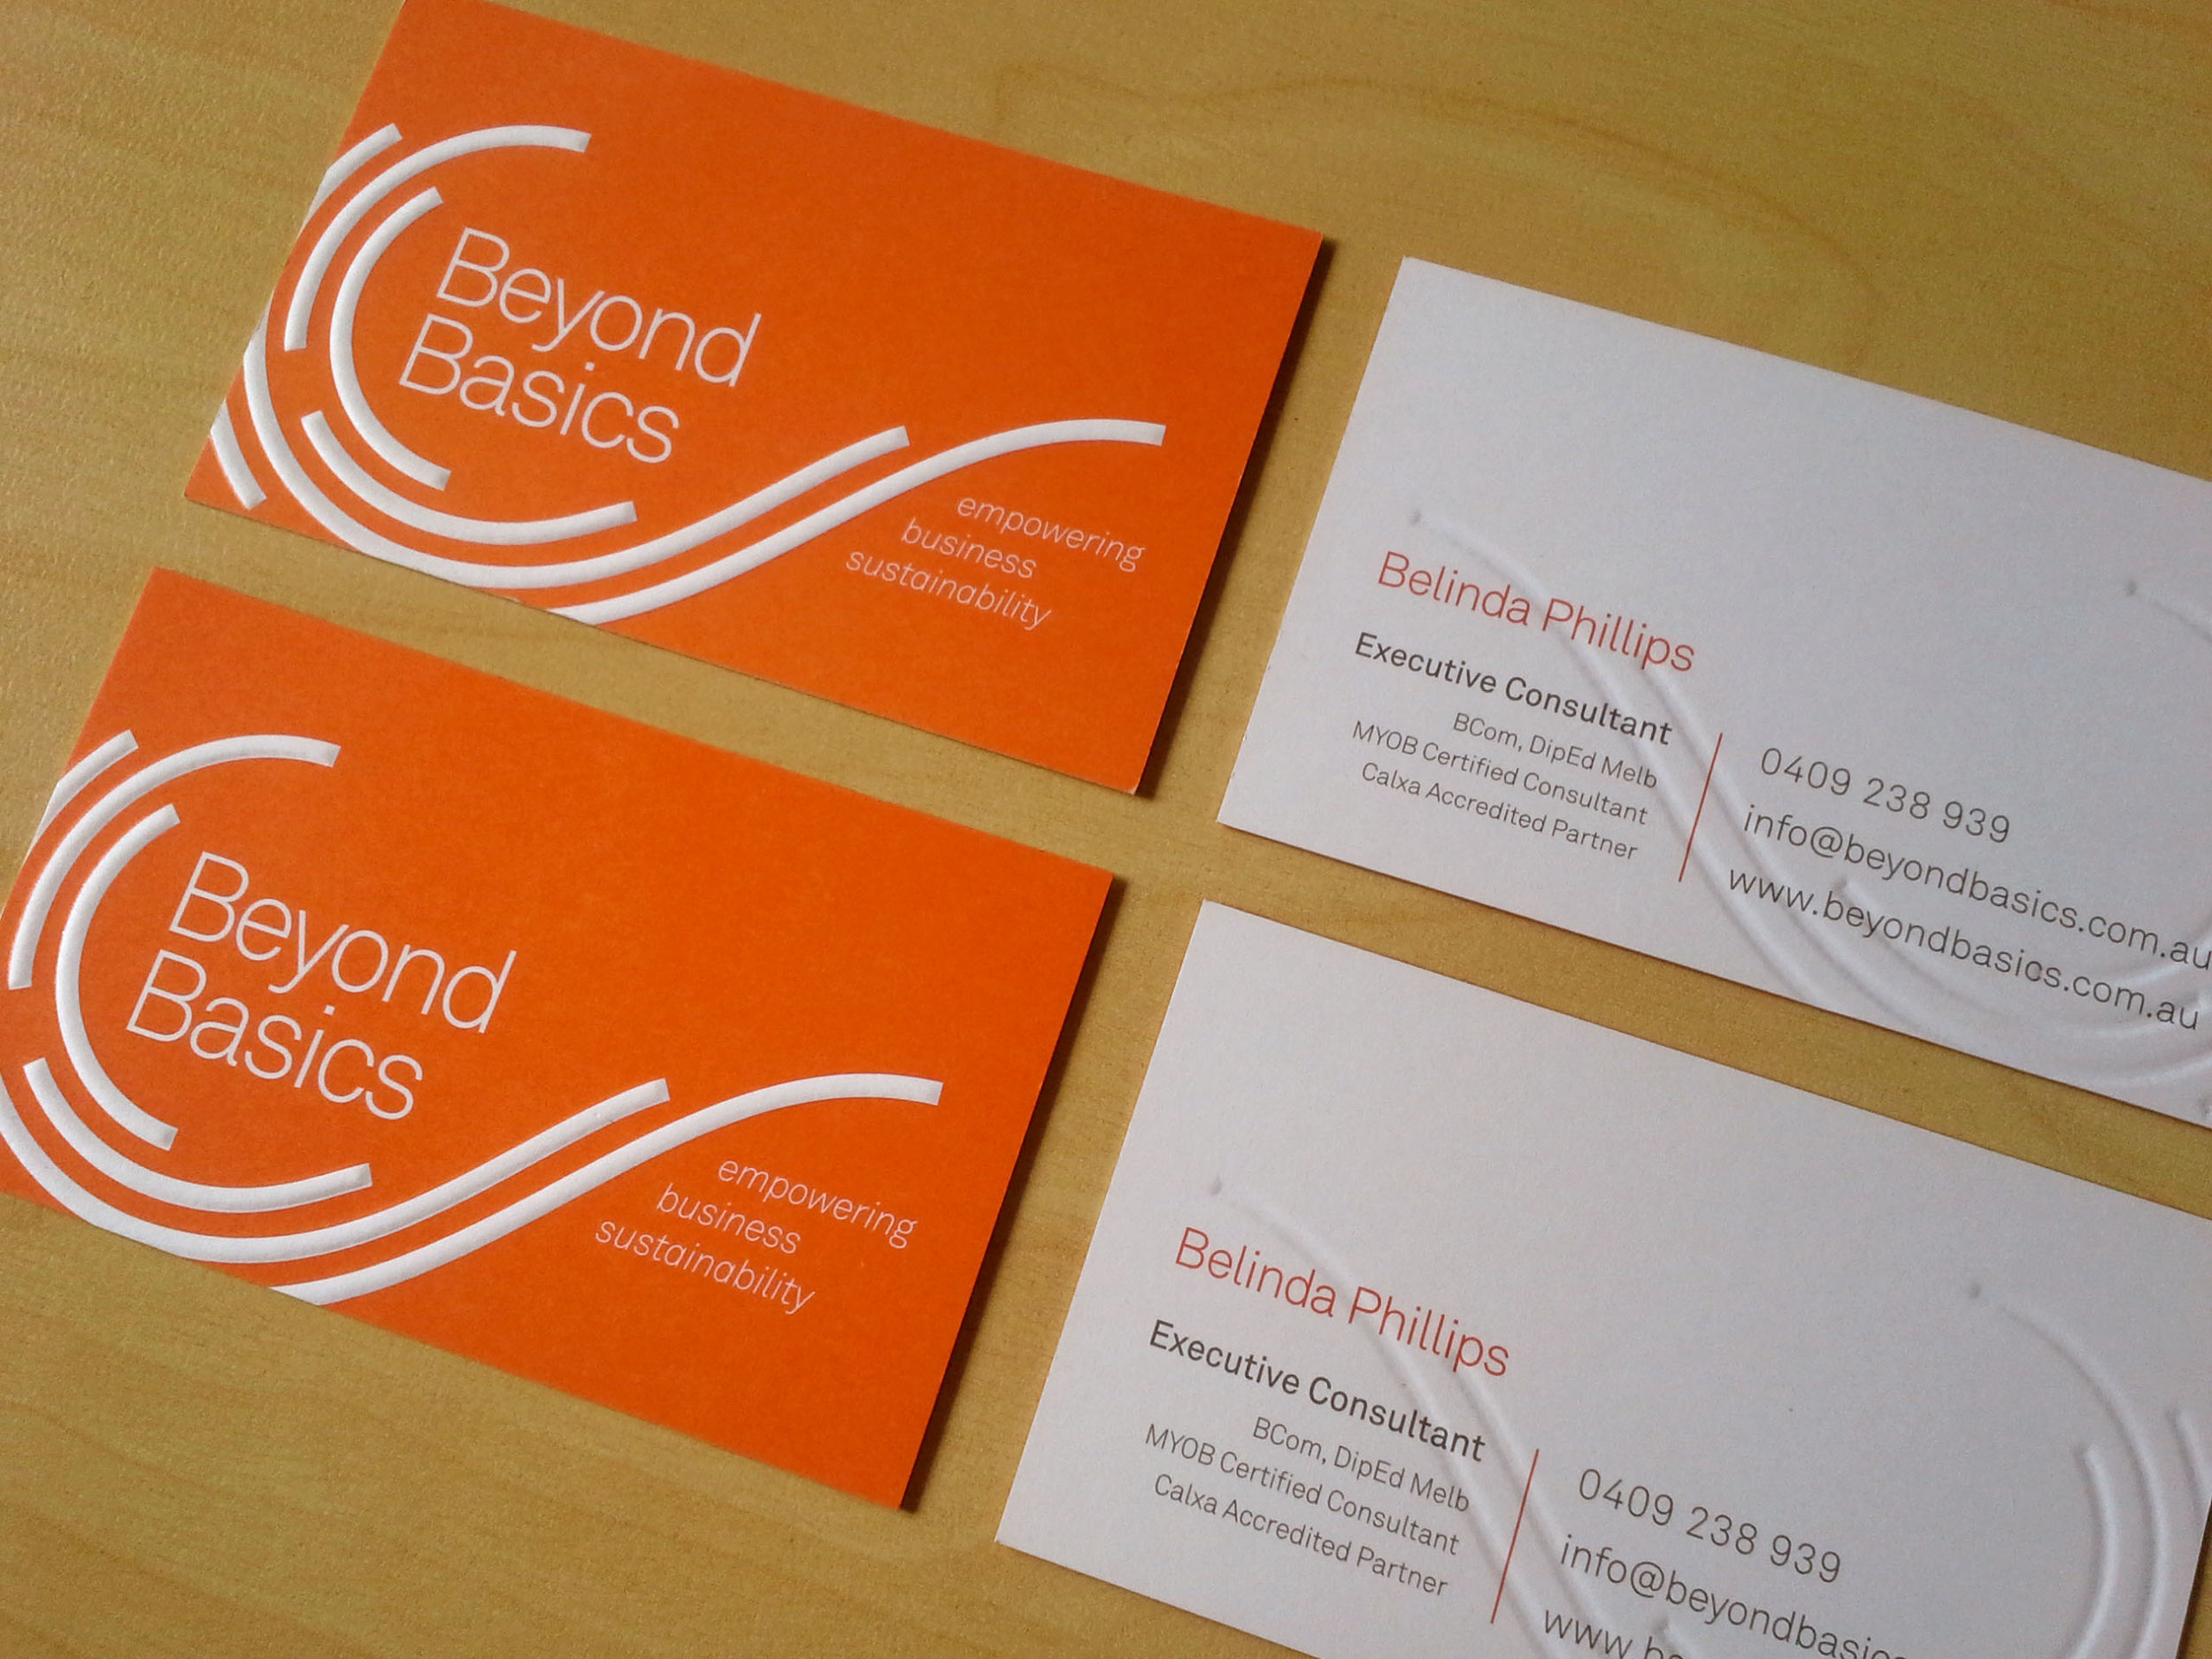 BEYOND BASICS: Brand Development & Embossed Business Cards.